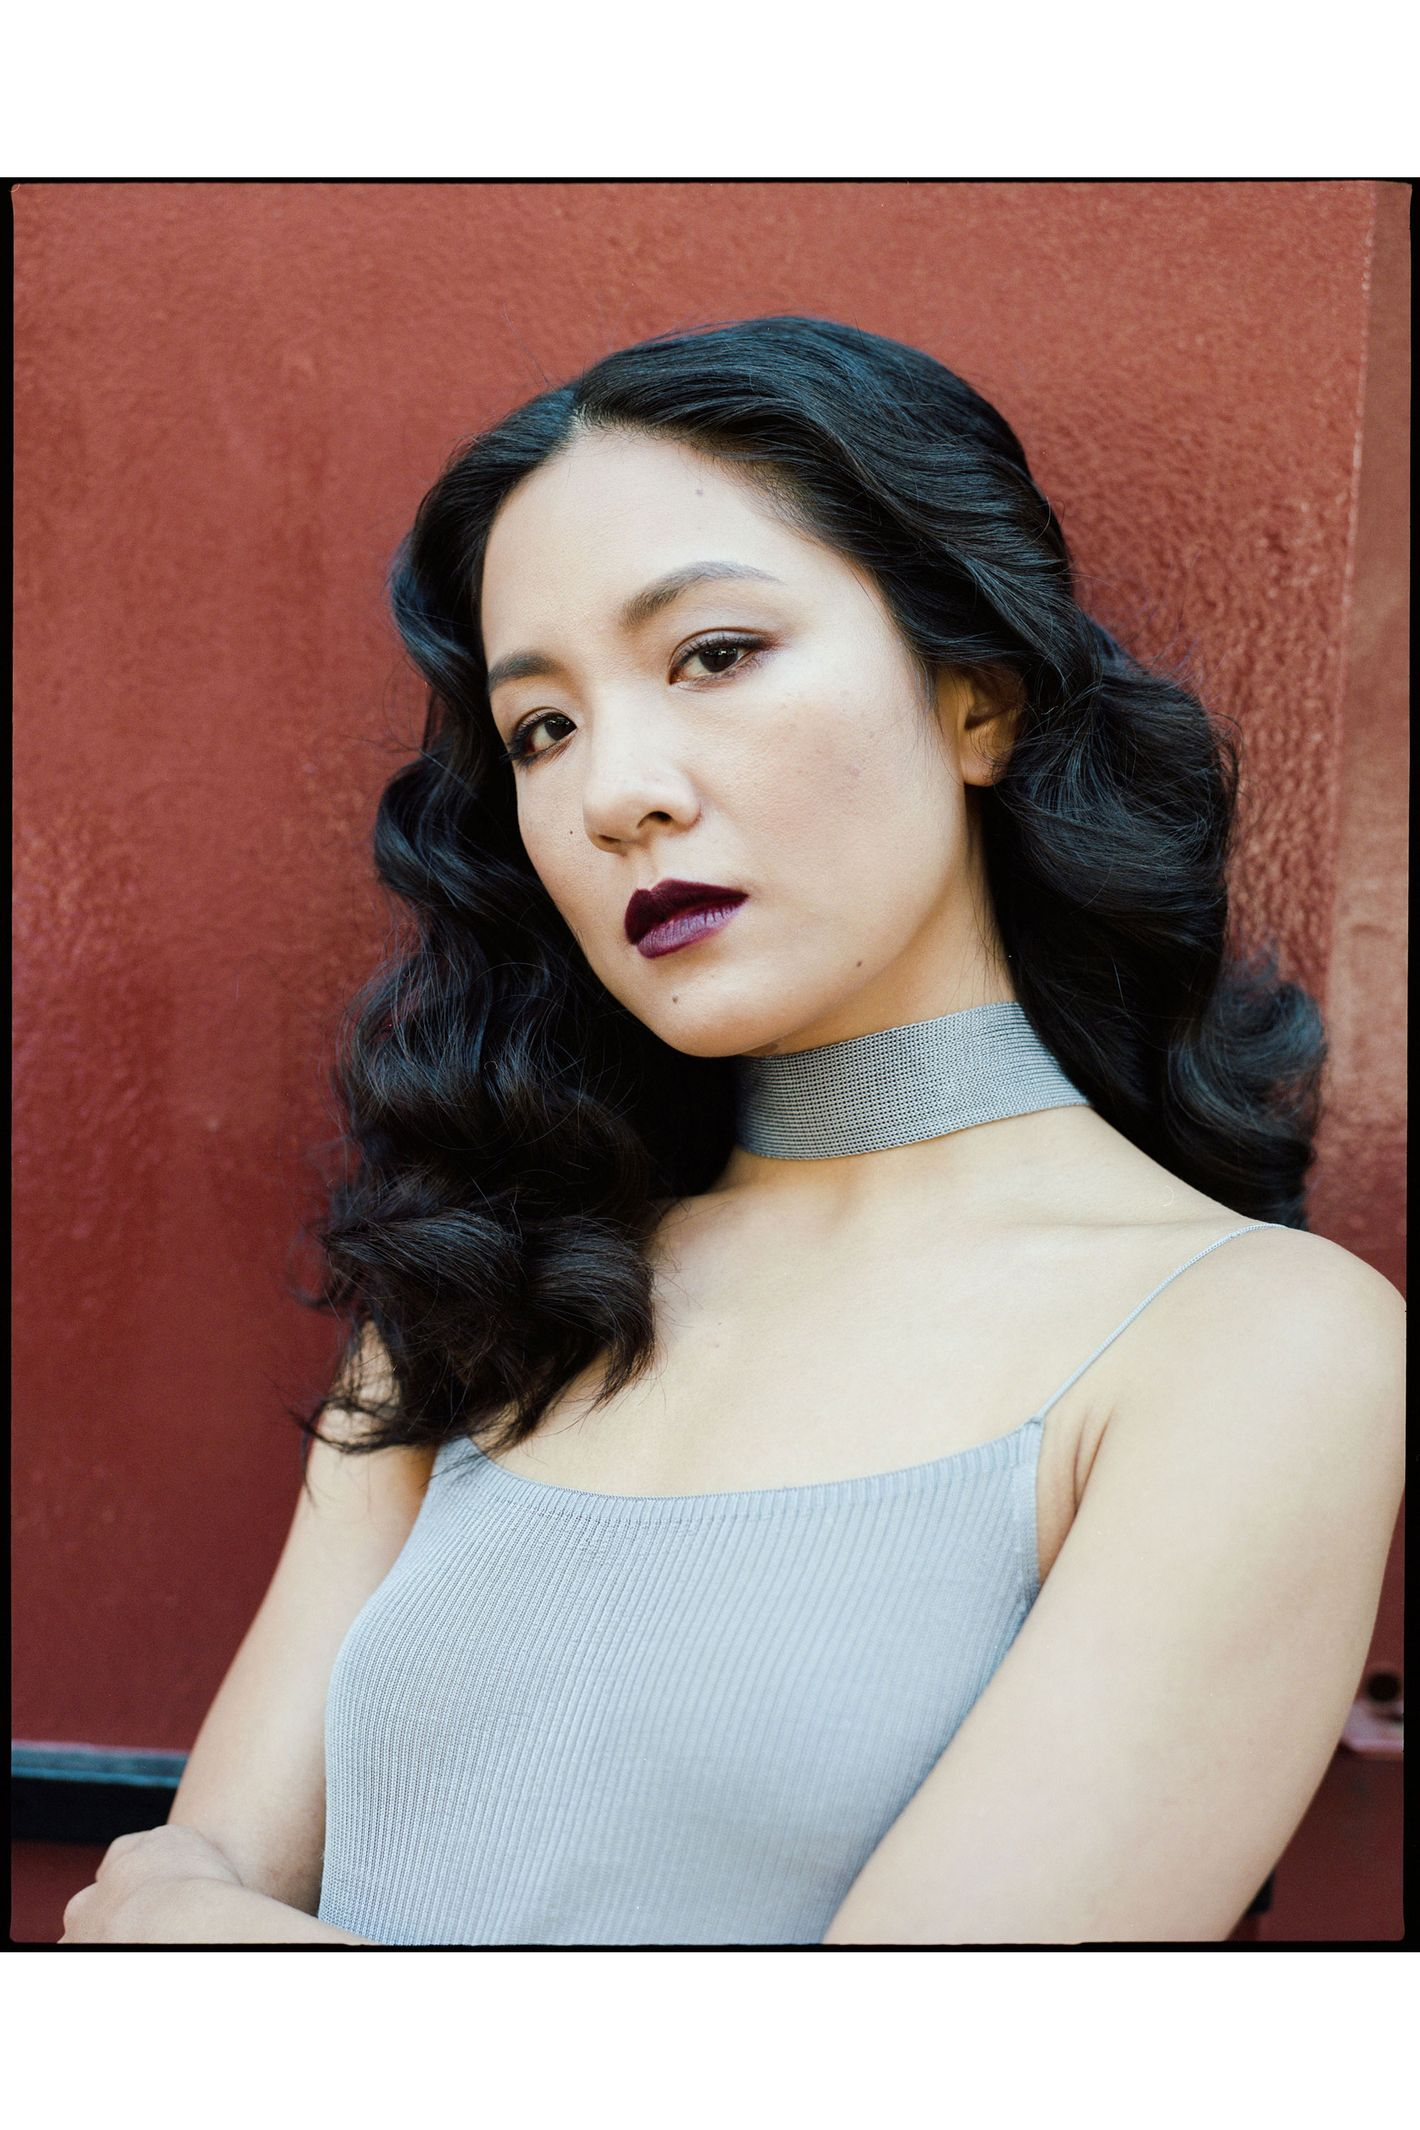 Constance Wu dreams to be on the Little Shop Of Horrors cast.